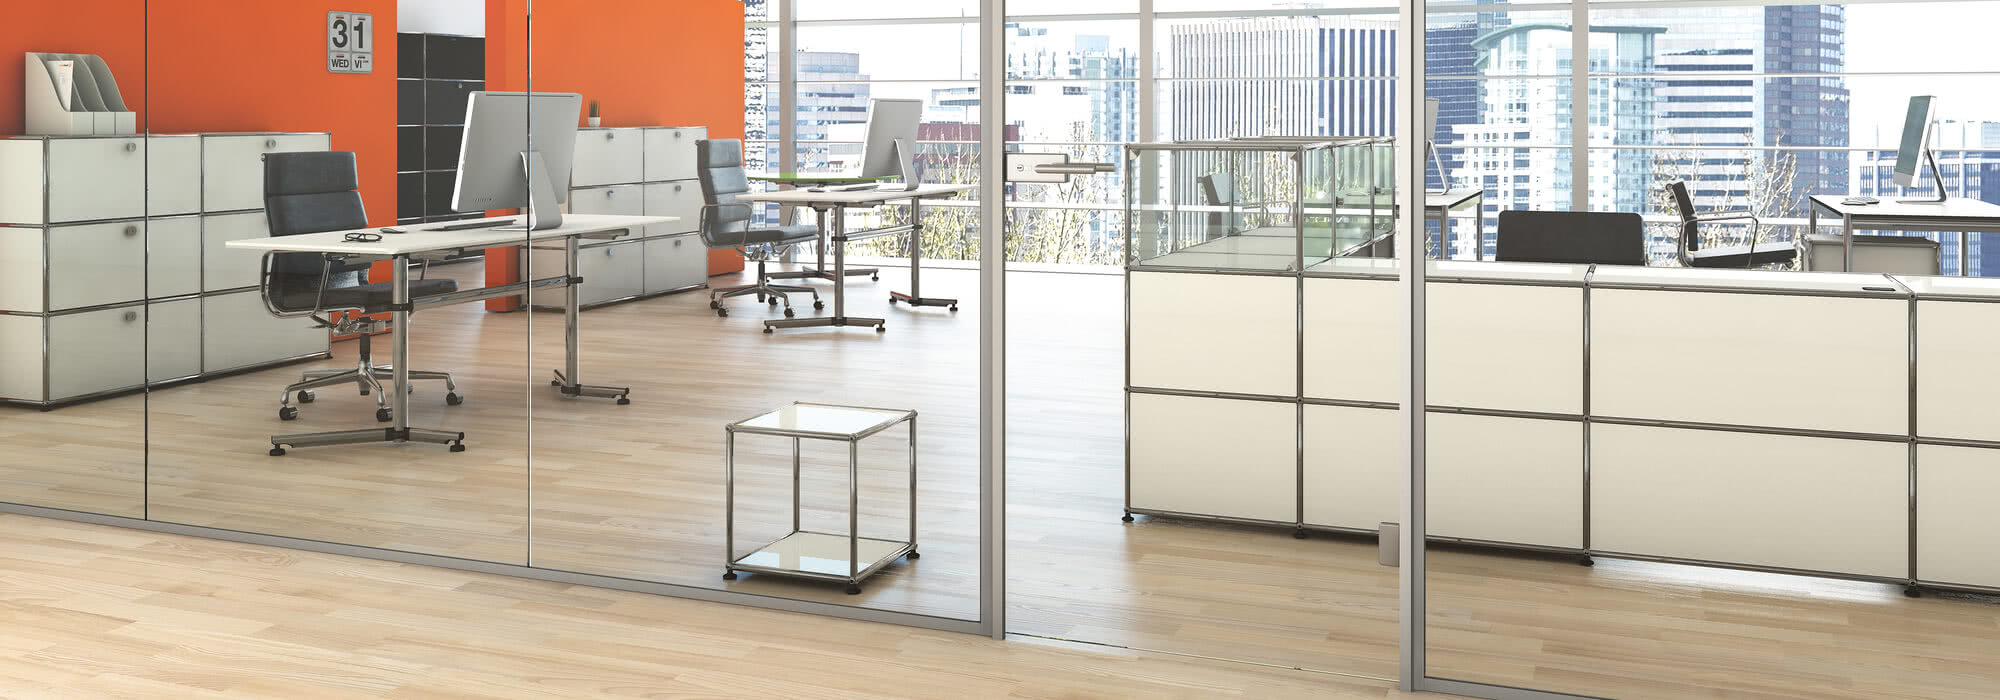 All-glass systems